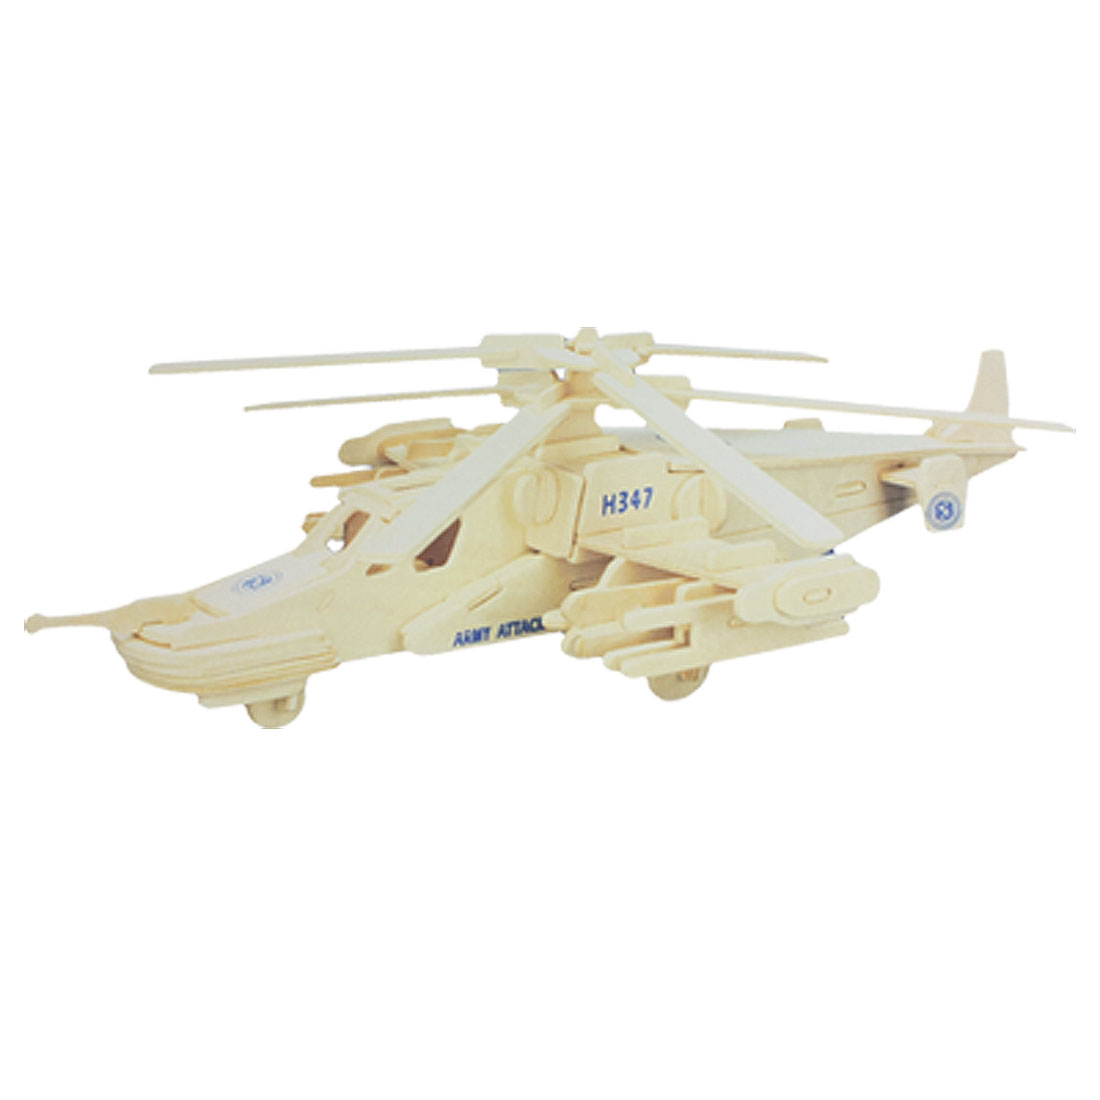 Black Shark Helicopter Woodcraft Construction Kit Wood Assemble Puzzle Toy